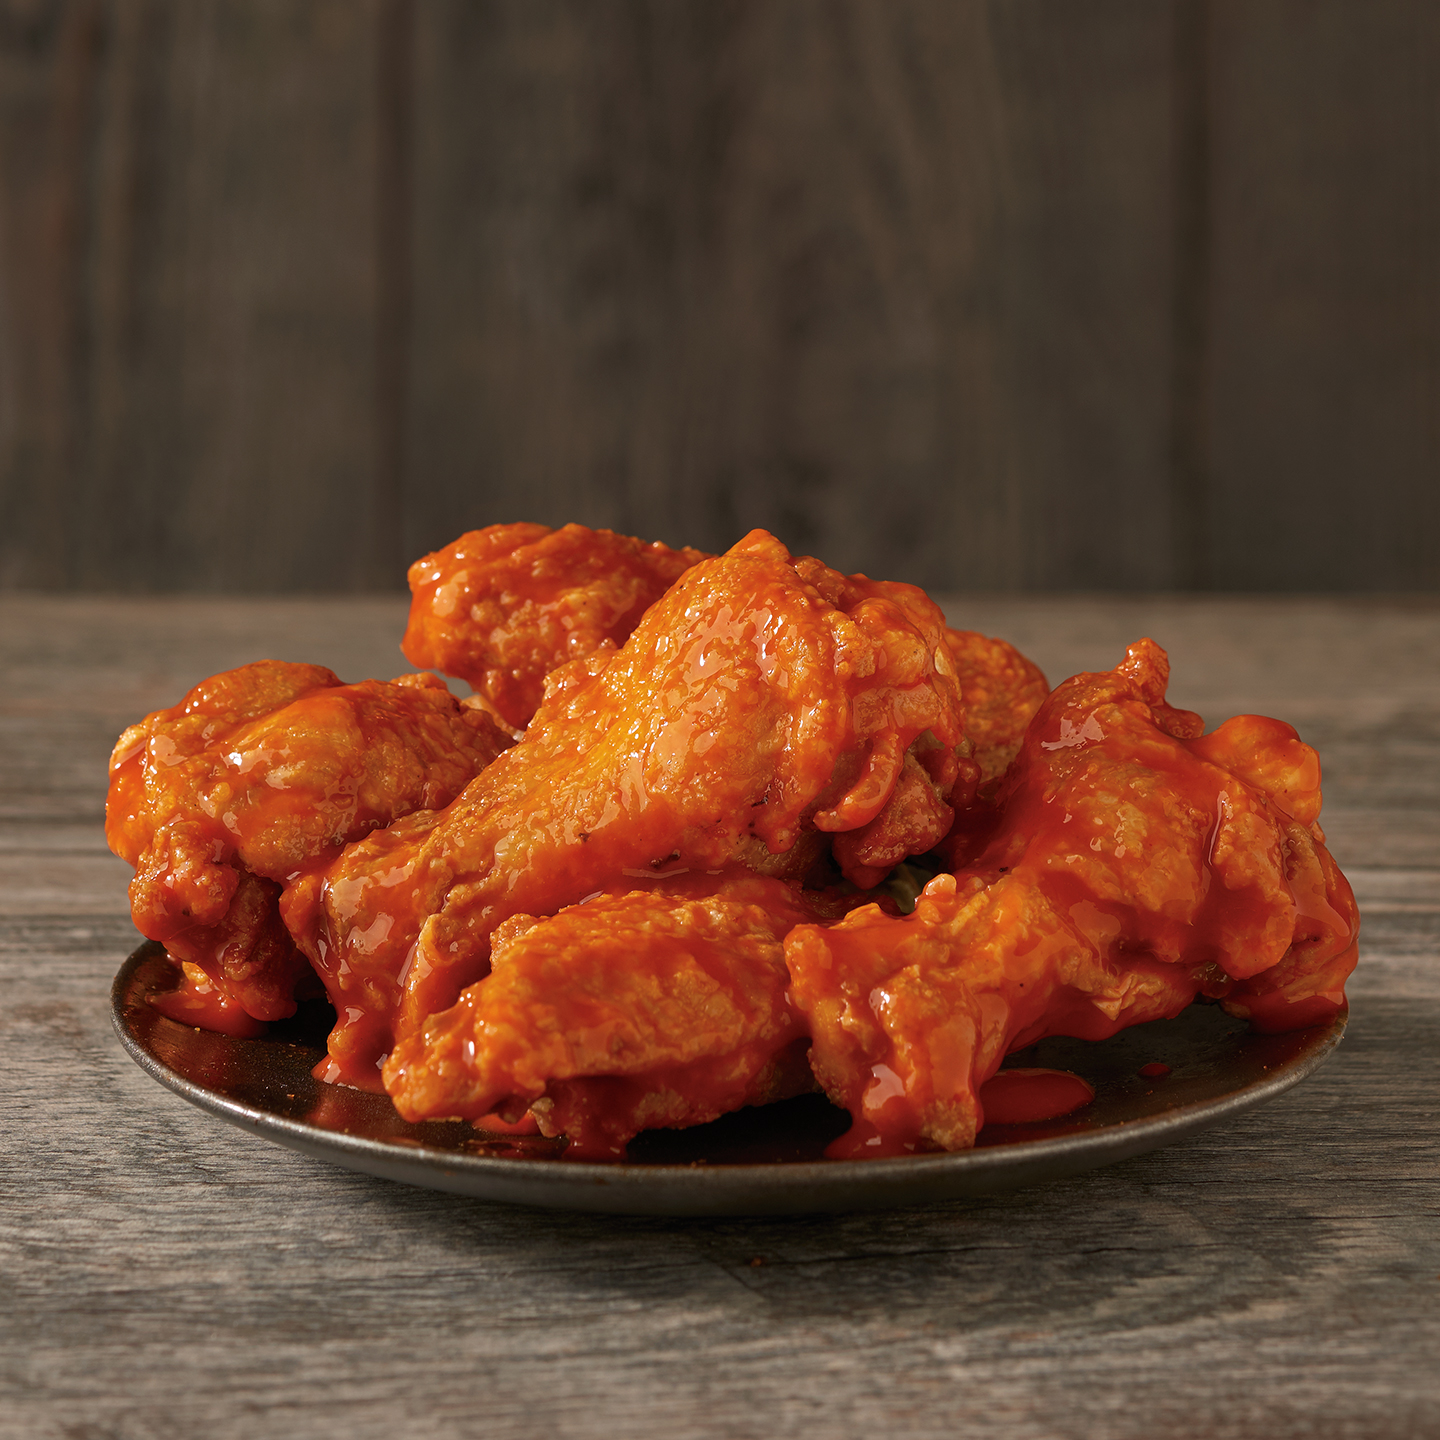 Five Fearless Flavors. They're not called crazy good for nothing. All of our authentic Classic Wings come swimming in flavor. Try 'em sauced and tossed in a variety of over-the-top flavors and sizes.